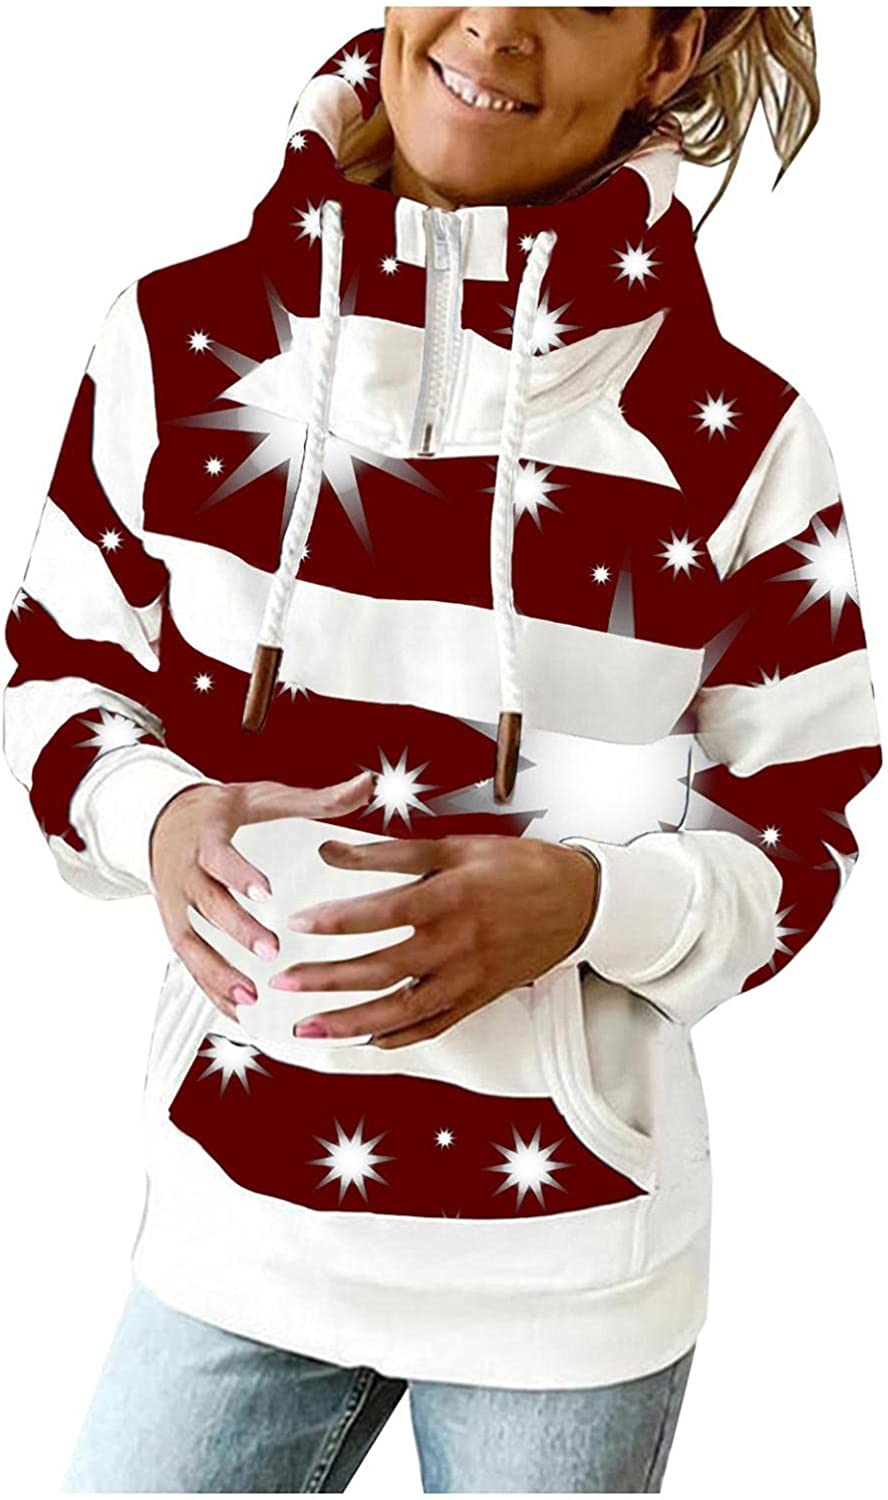 AODONG Hoodies for Women Plus Size Zip Up Pullover Tops with Pocket Hoodies Striped Long Sleeves Hooded Tops